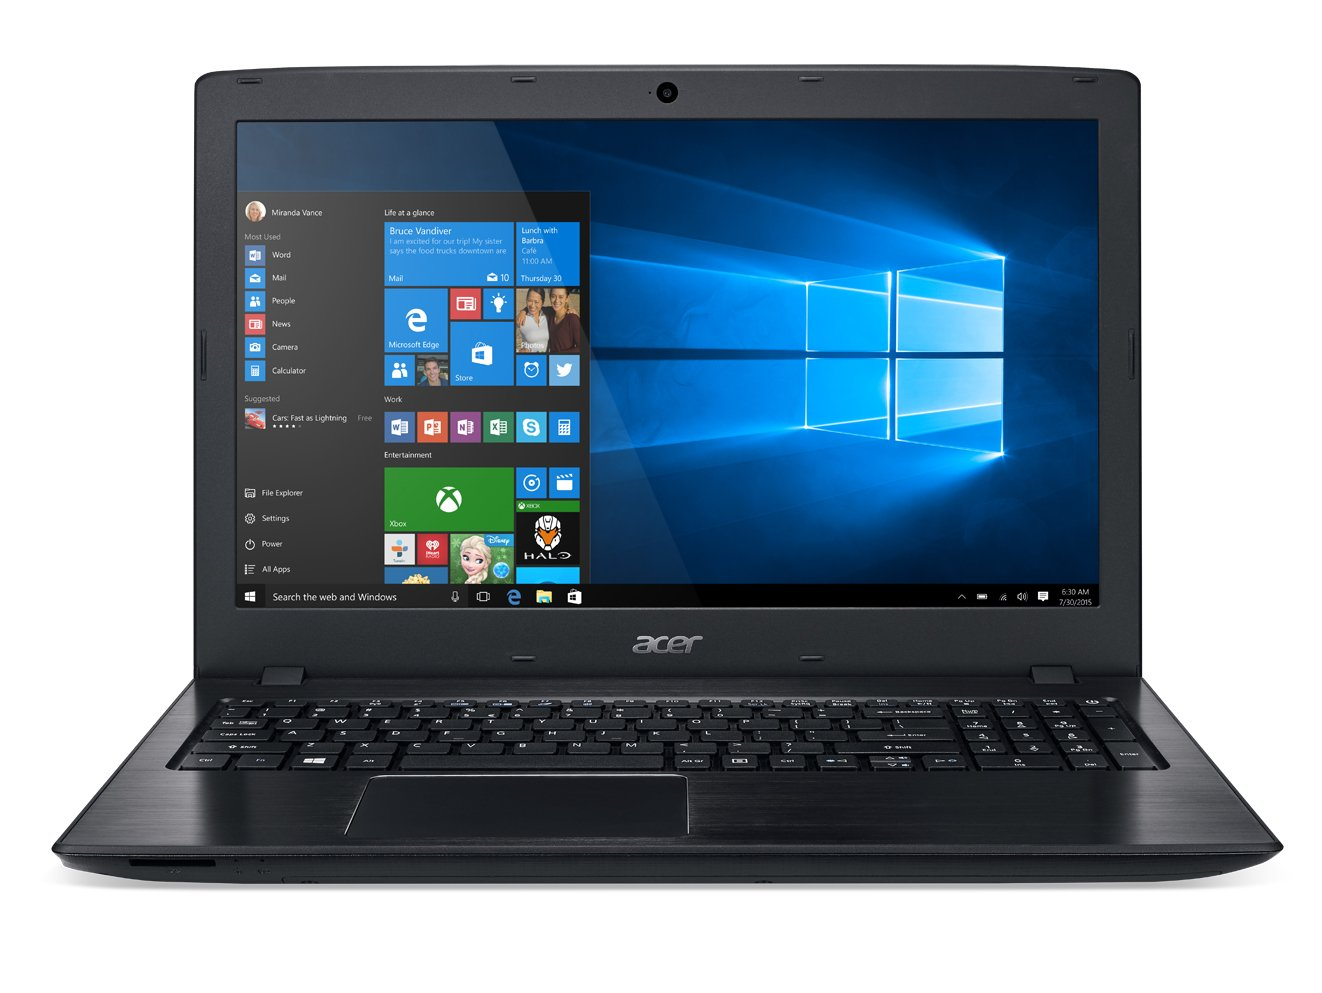 Acer Aspire E 15, 15.6″ Full HD, 8th Gen Intel Core i3-8130U, 6GB RAM Memory, 1TB HDD, 8X DVD, E5-576-392H